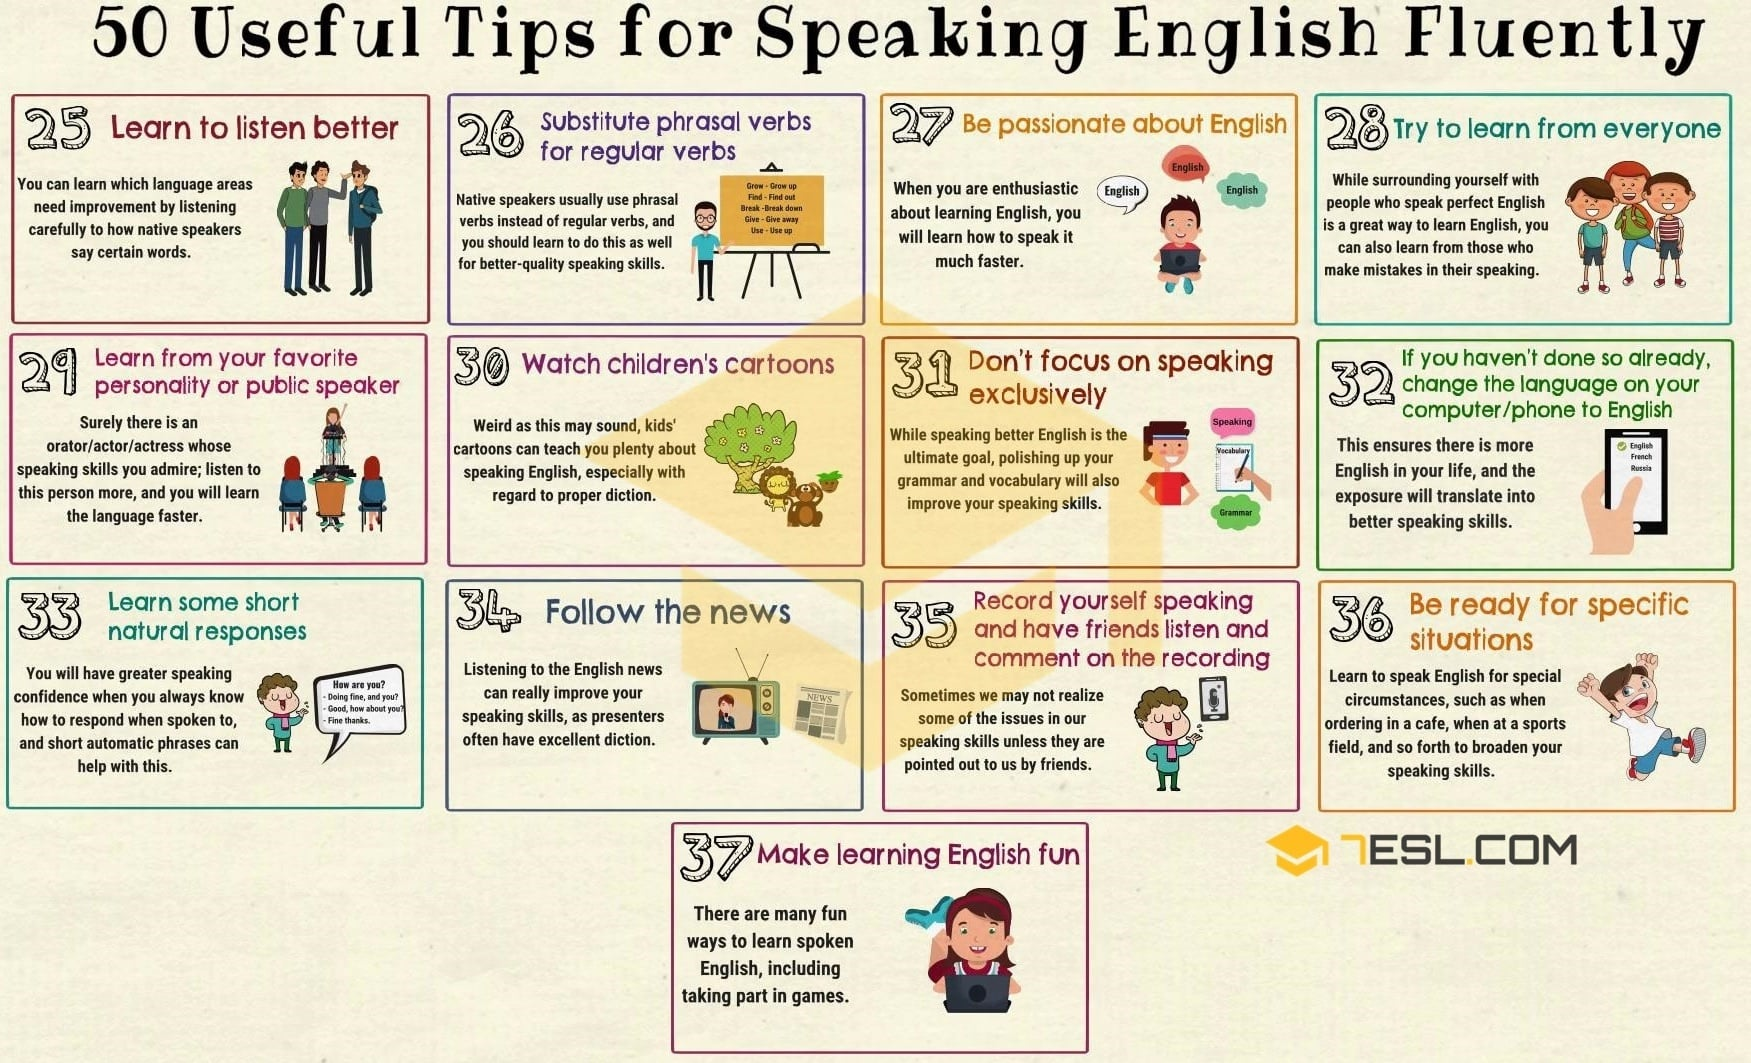 How to Speak English: Useful English Speaking Tips | Image 3